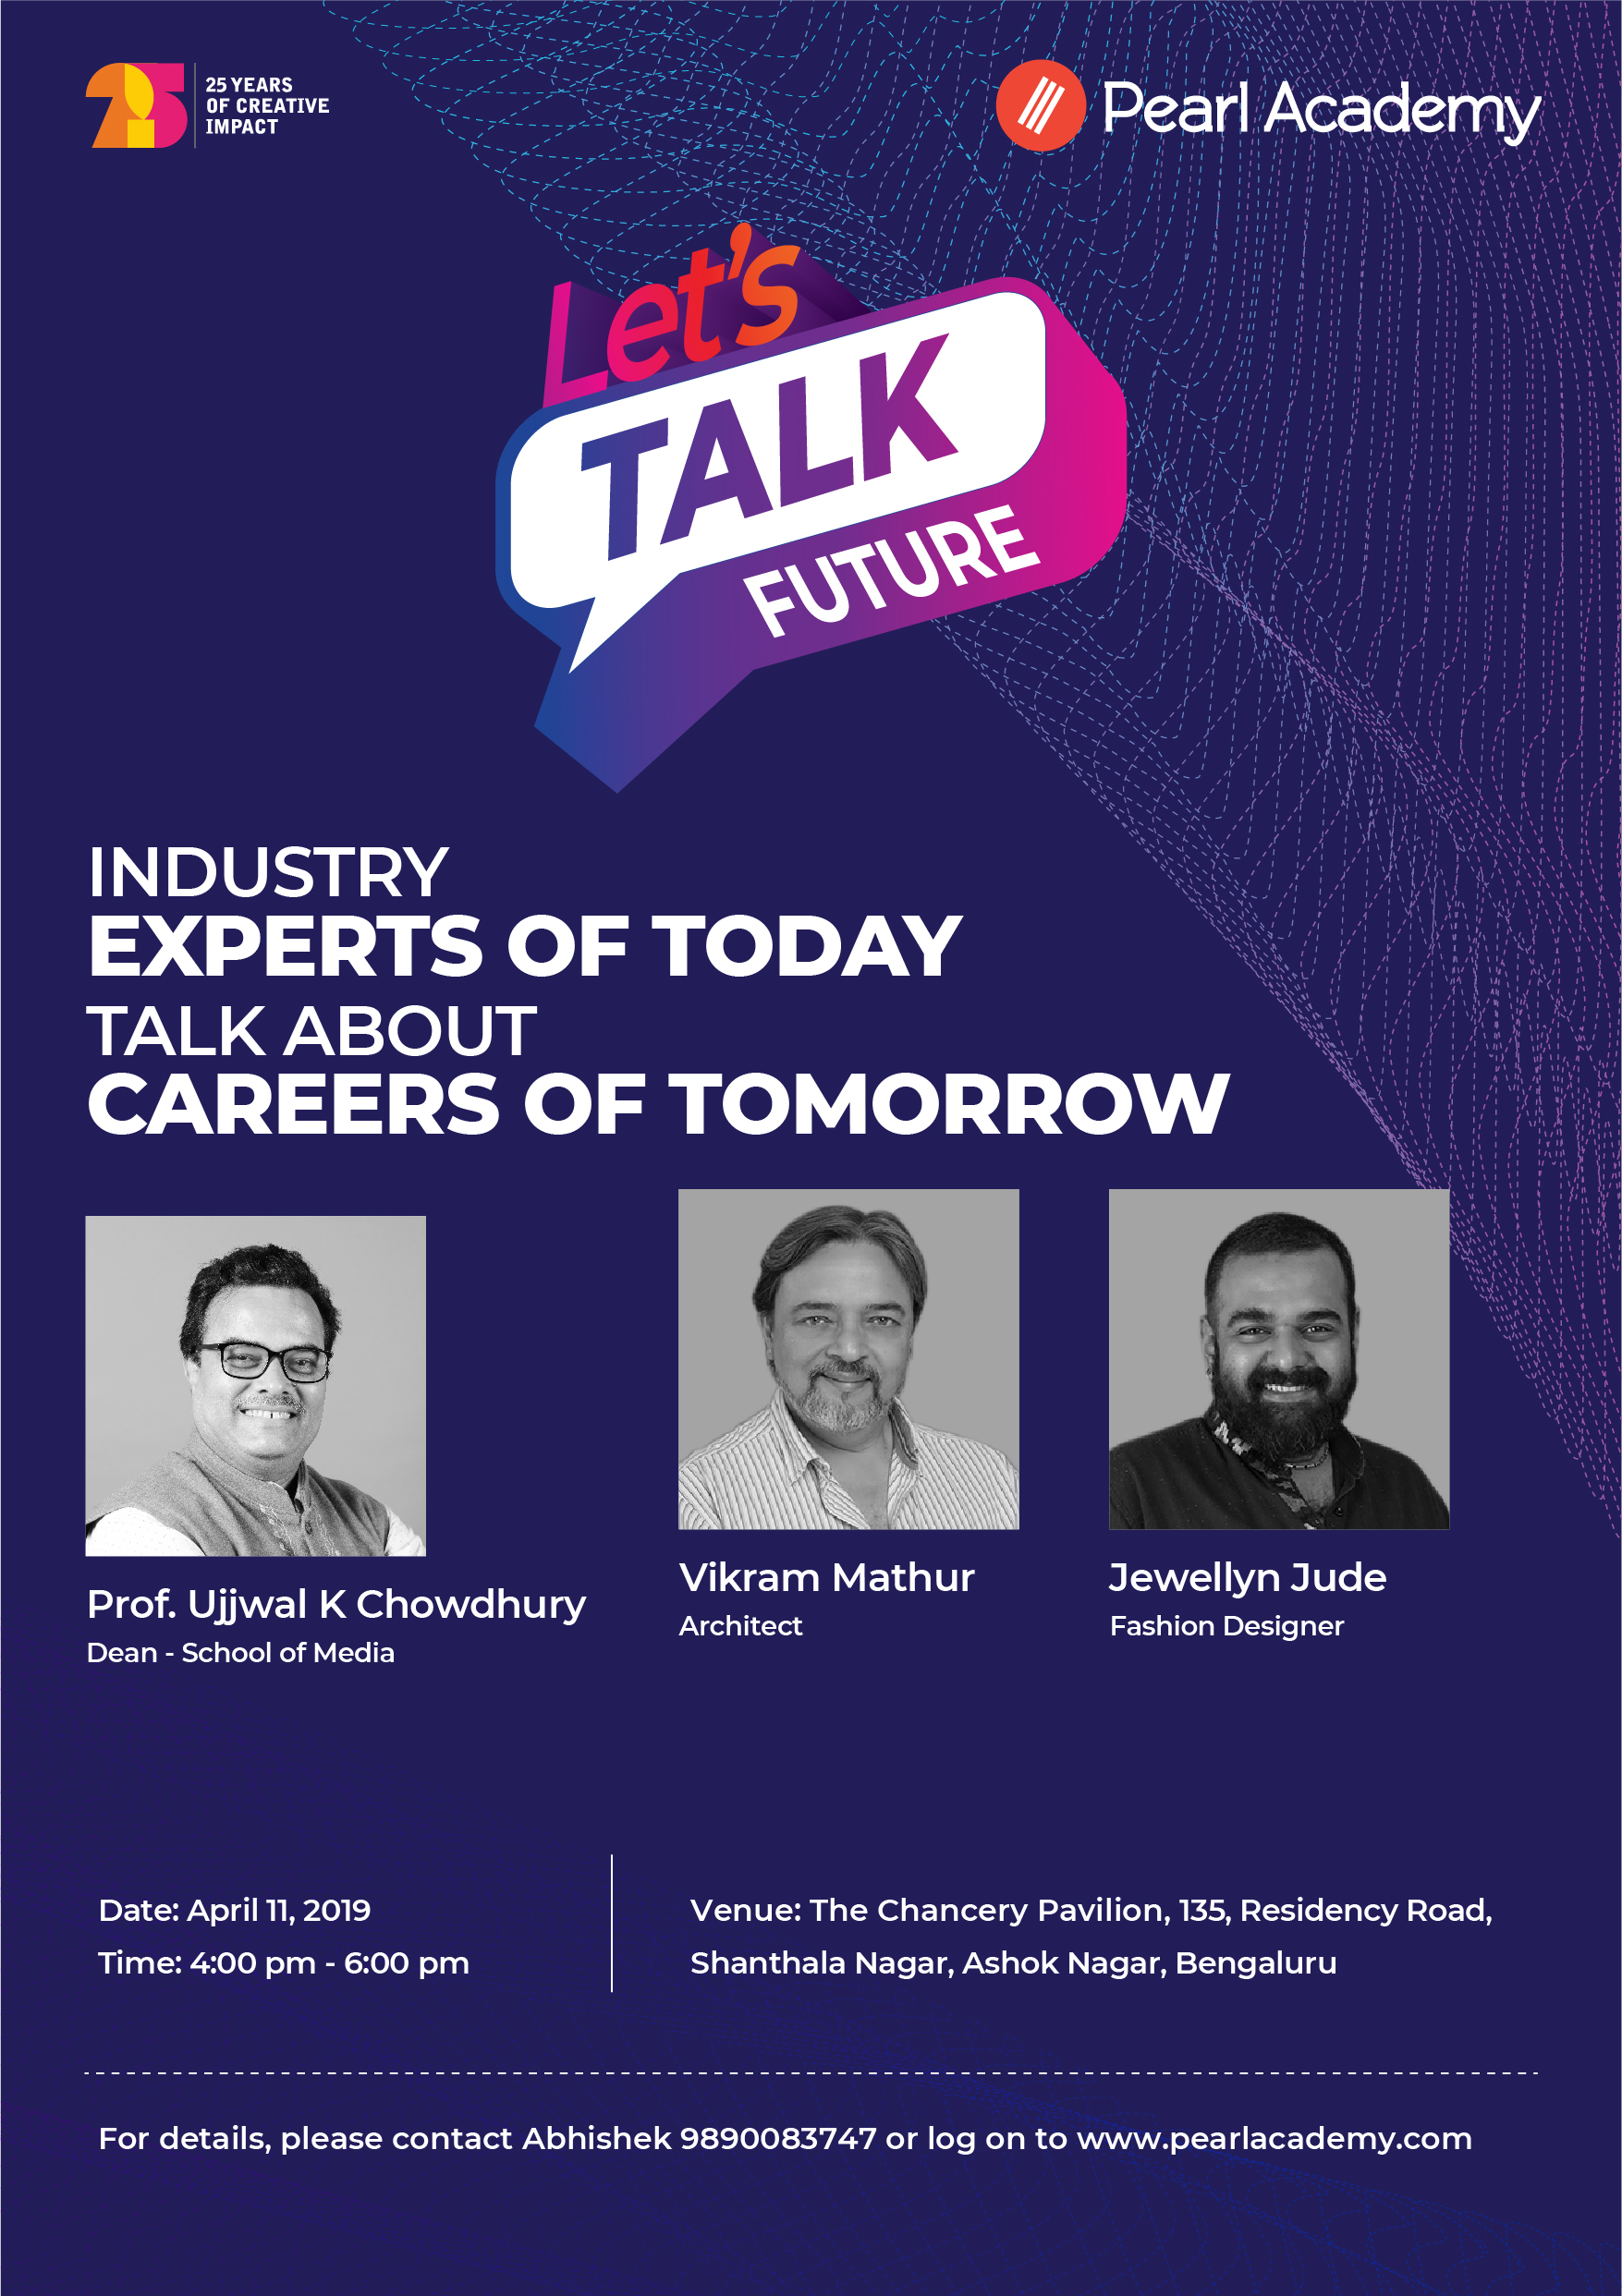 Let's Talk Future - Bengaluru